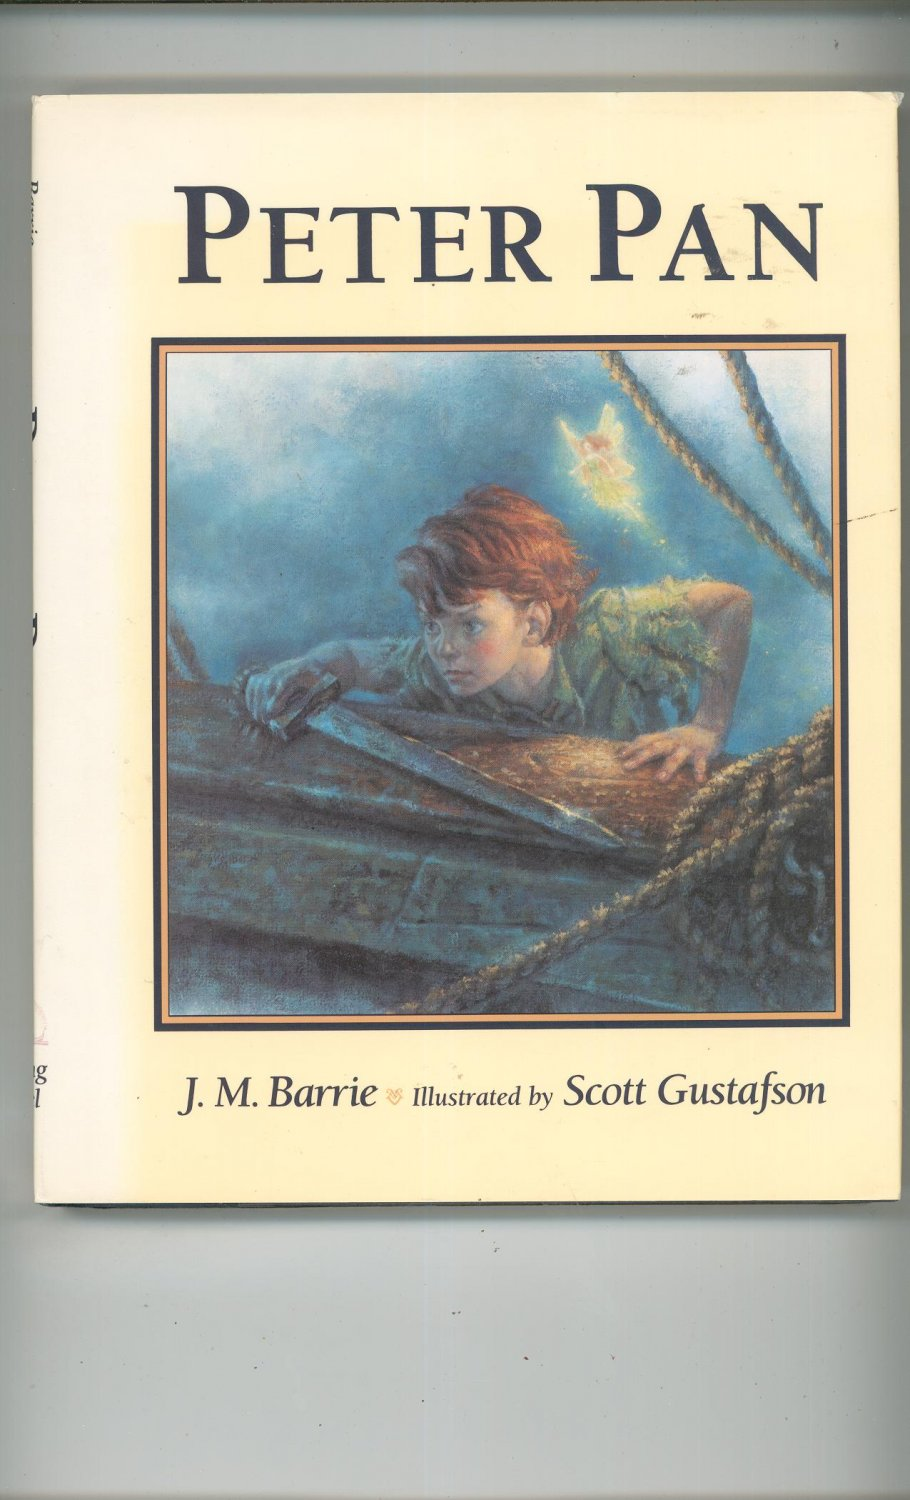 Peter Pan by J.M. Barrie Illustrated Scott Gustafson 0670841803